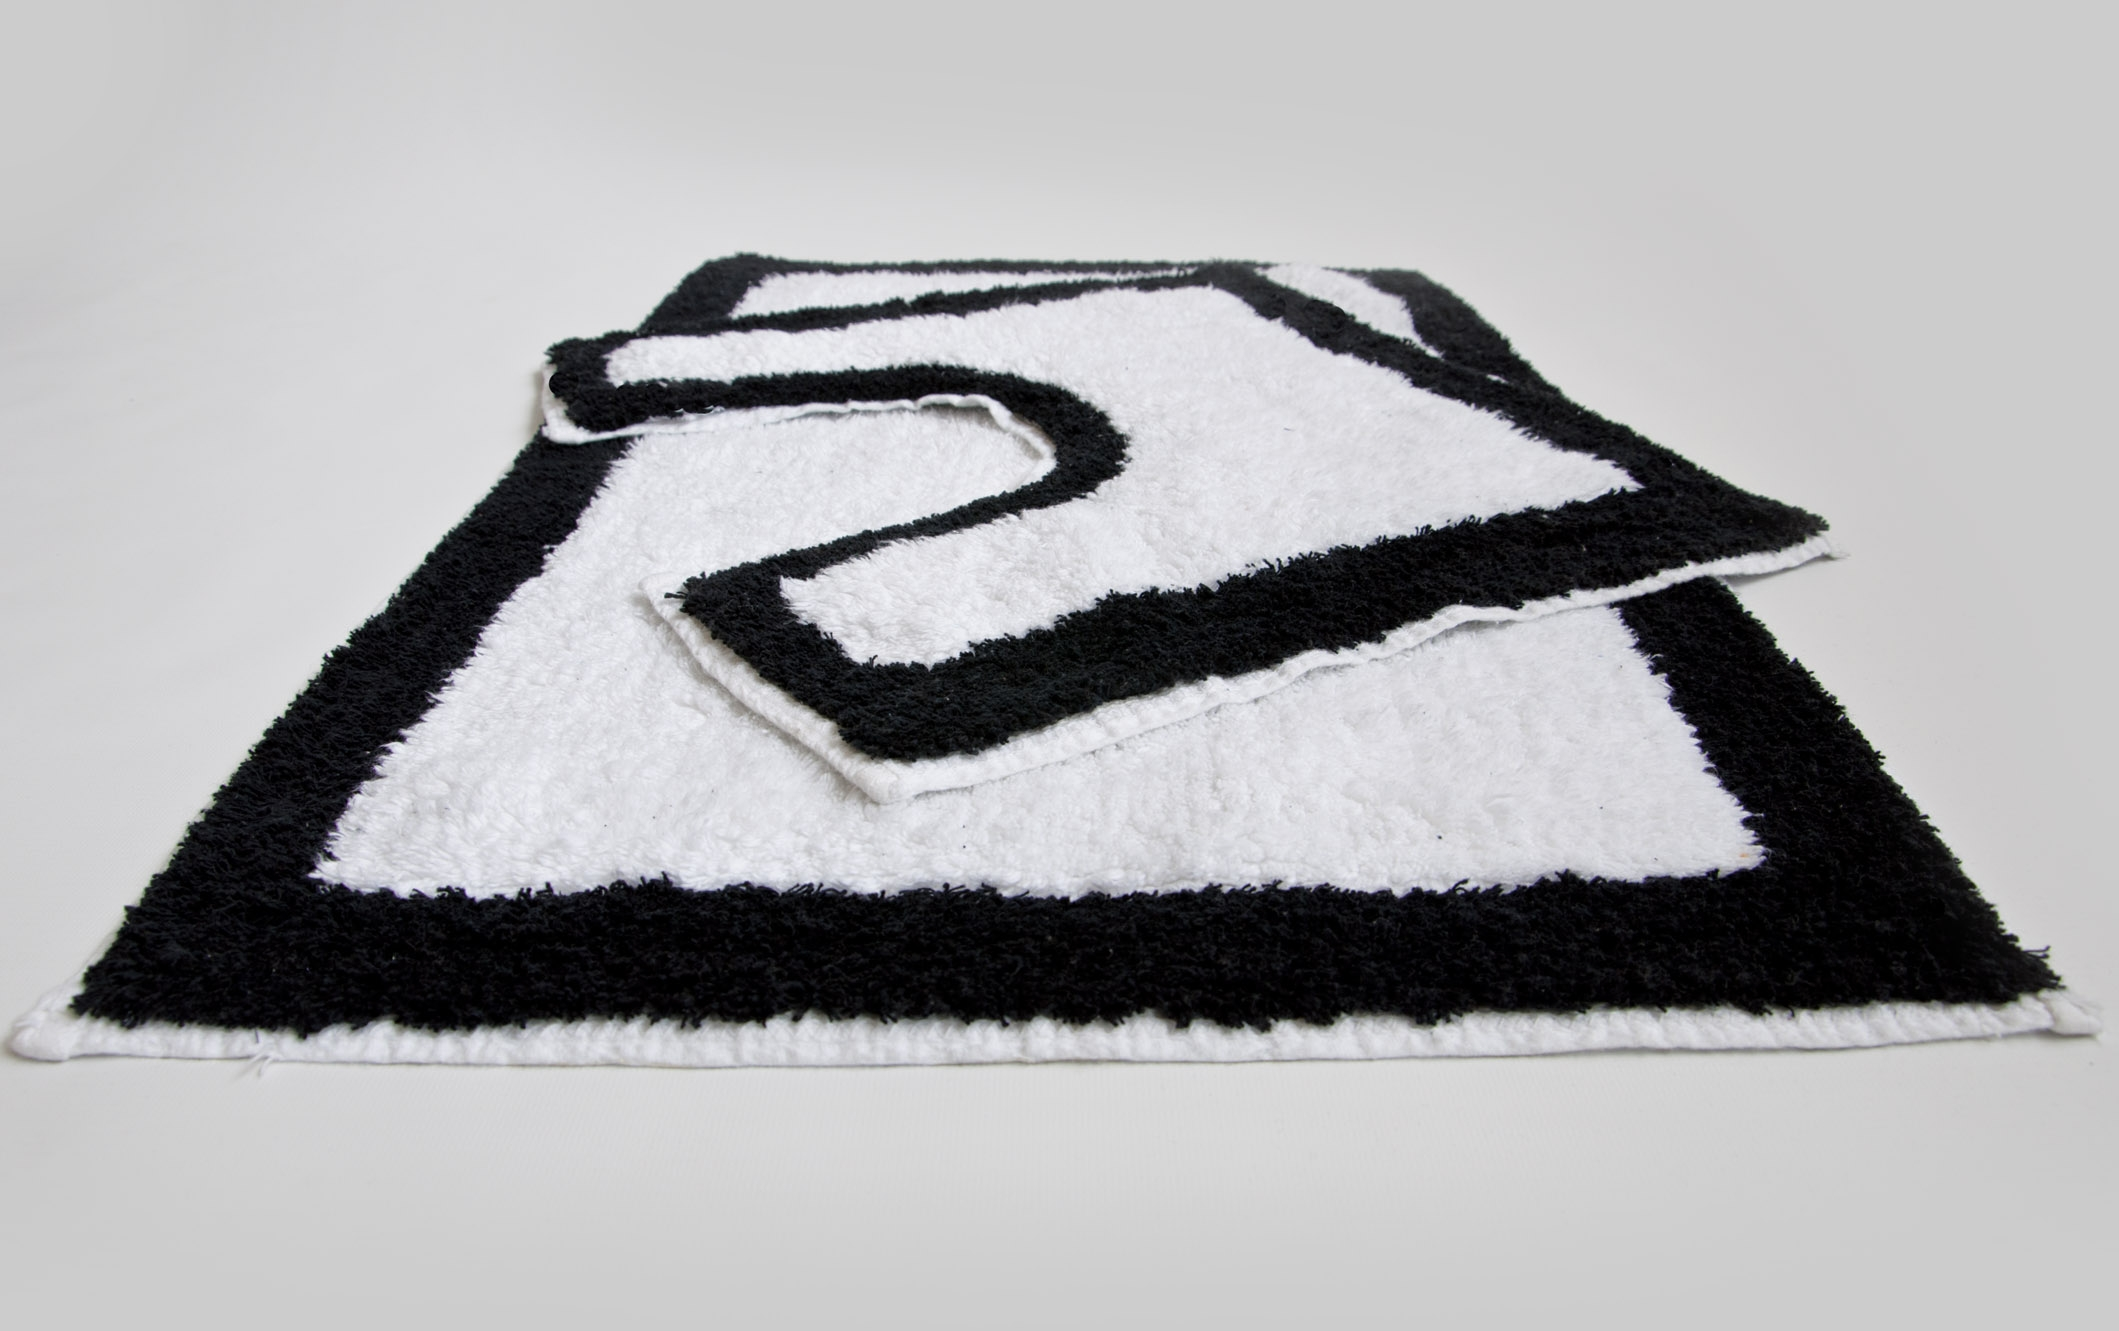 Black Bath Mat And Pedestal